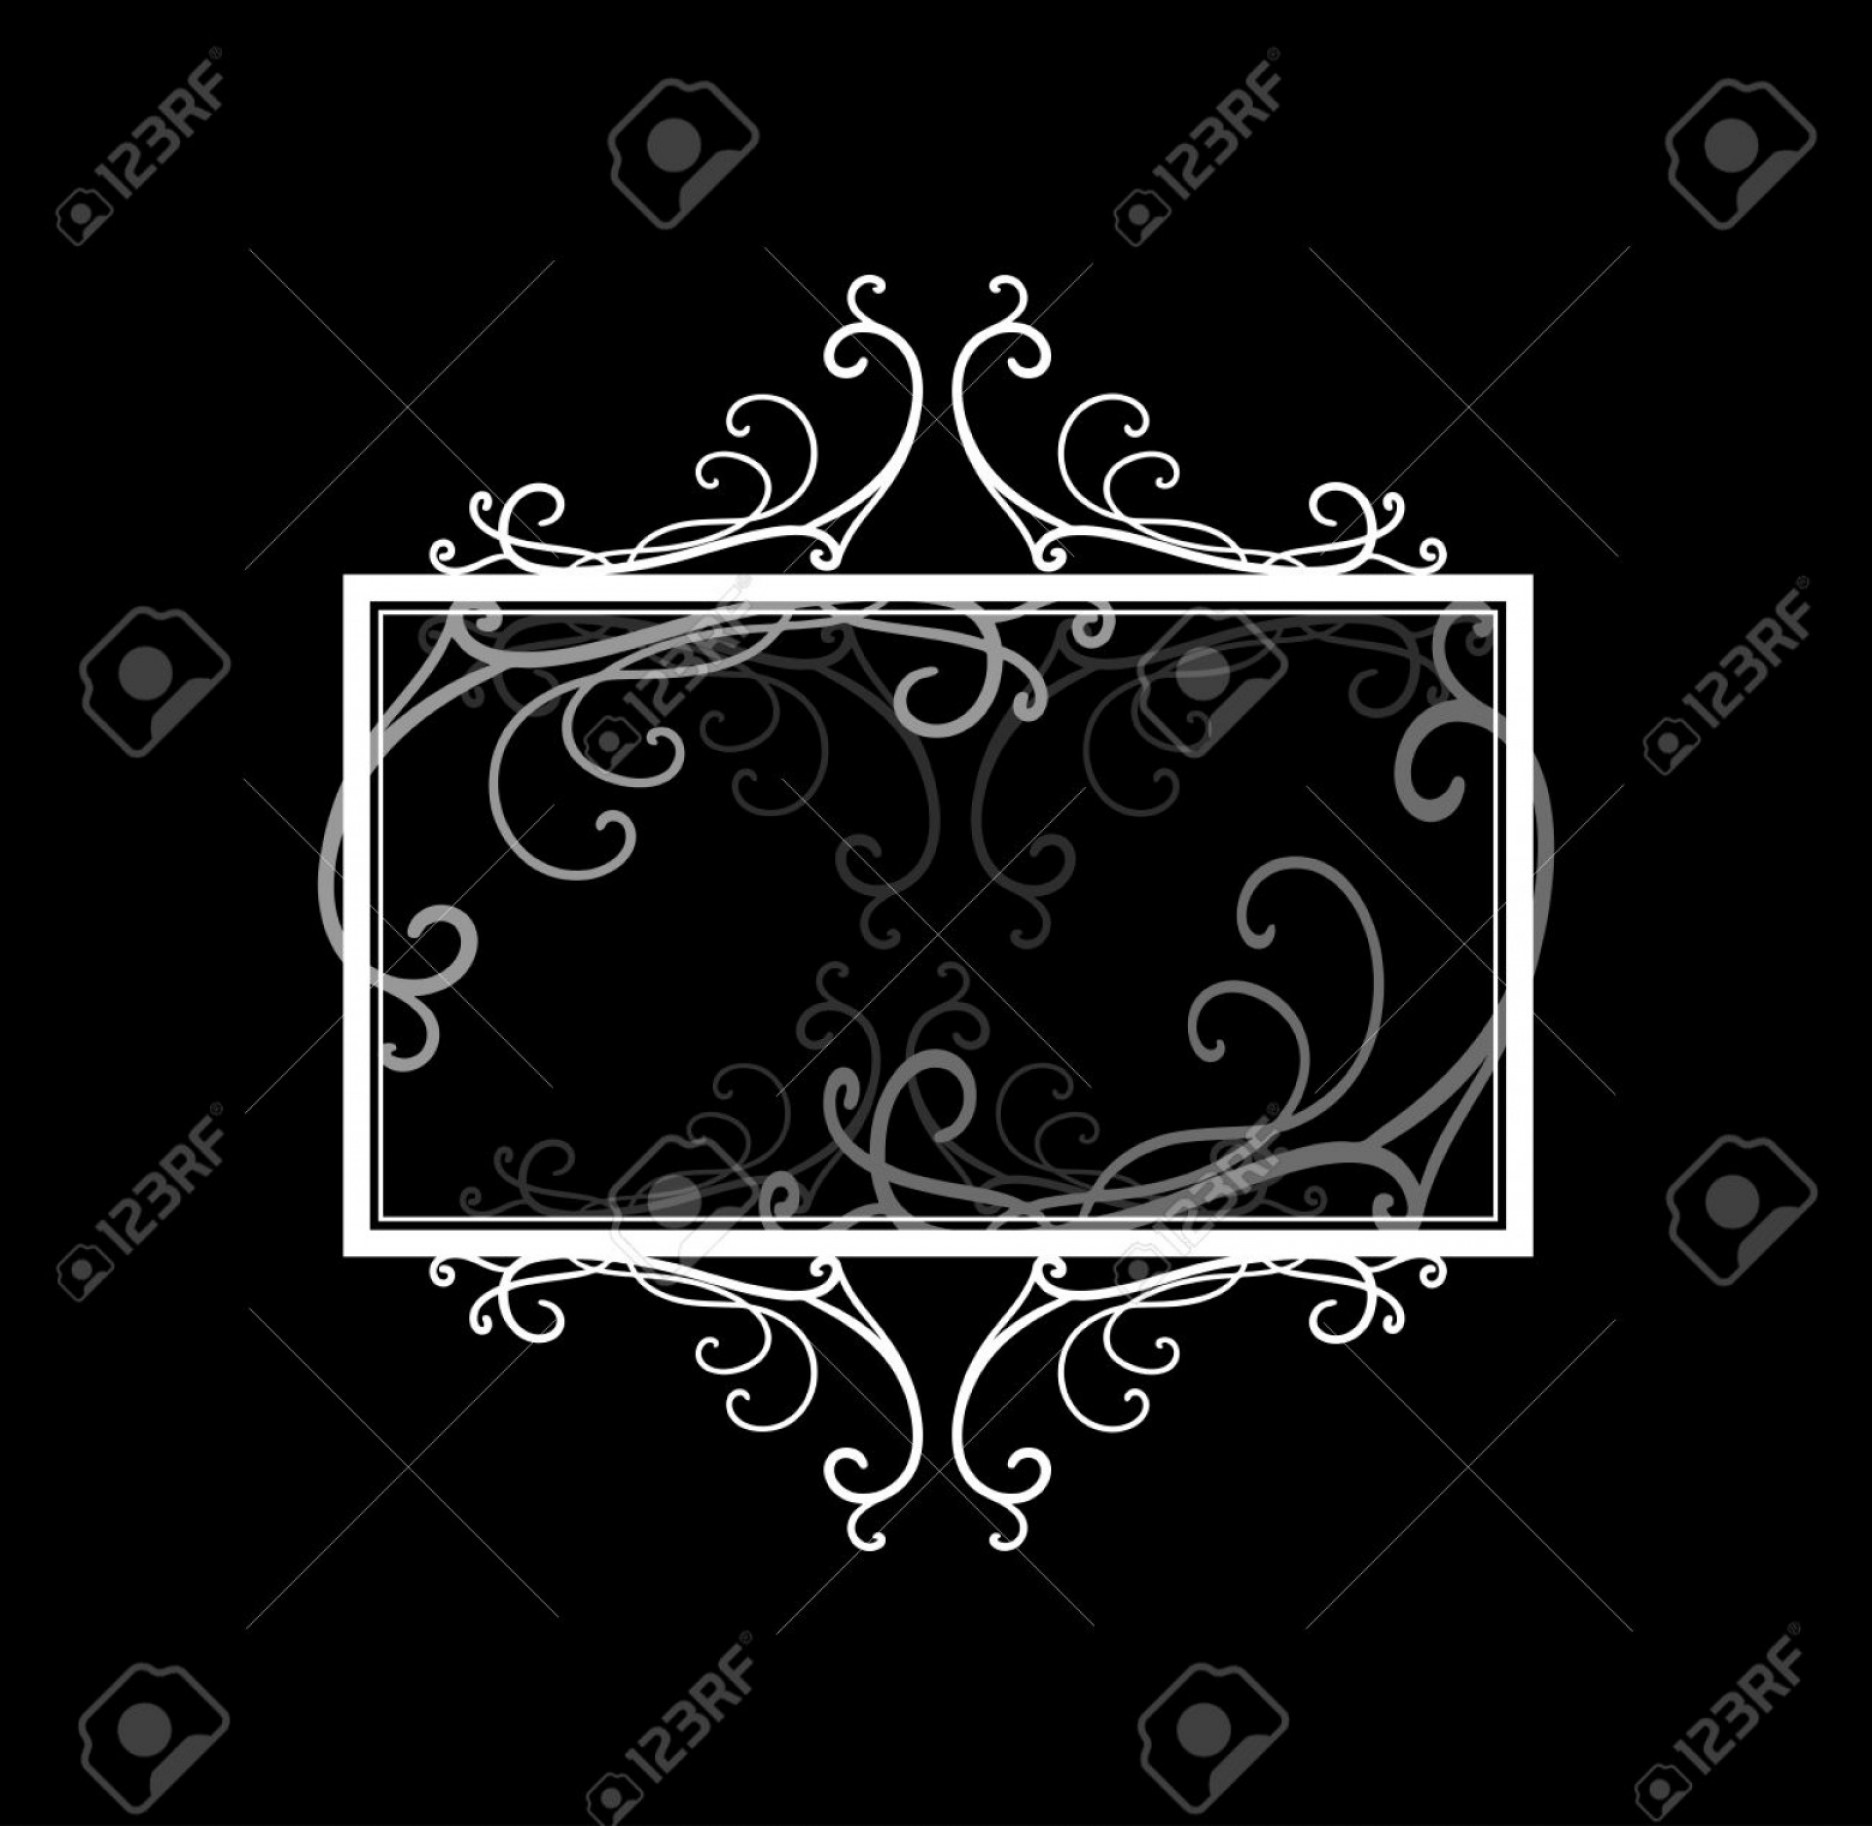 Vector Ornate Vintage Frame Blank: Photostock Vector Blank Black Text Box Or Sign Vector With White Fancy Frame Border Of Elegant Gray Curls And Swirl Vi